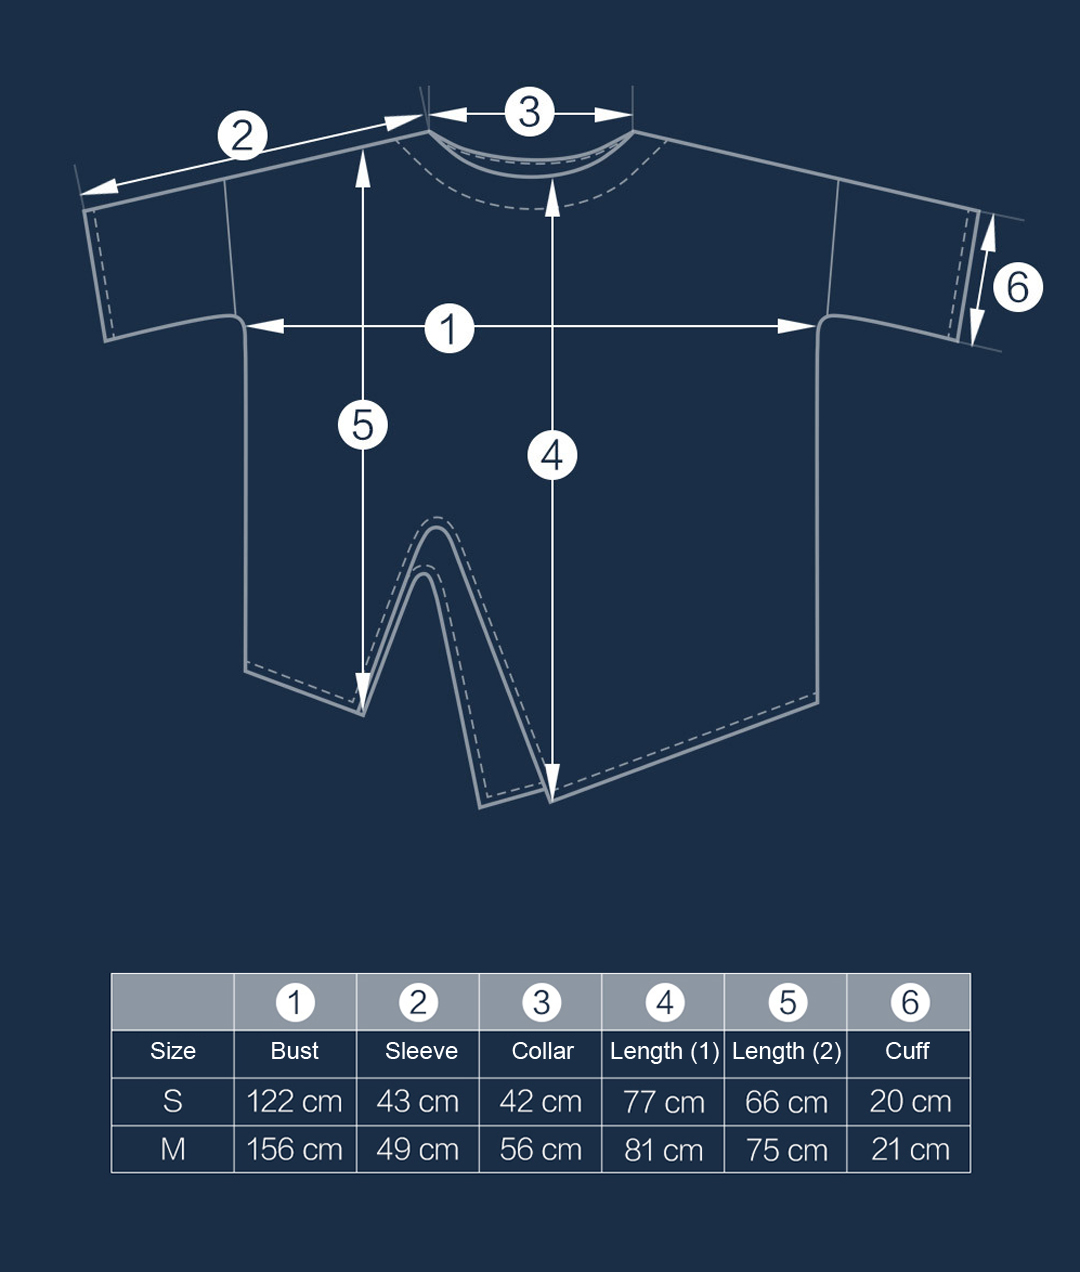 Xiaomi Fucha Qingyun Designer T-shirt  - Photo 9